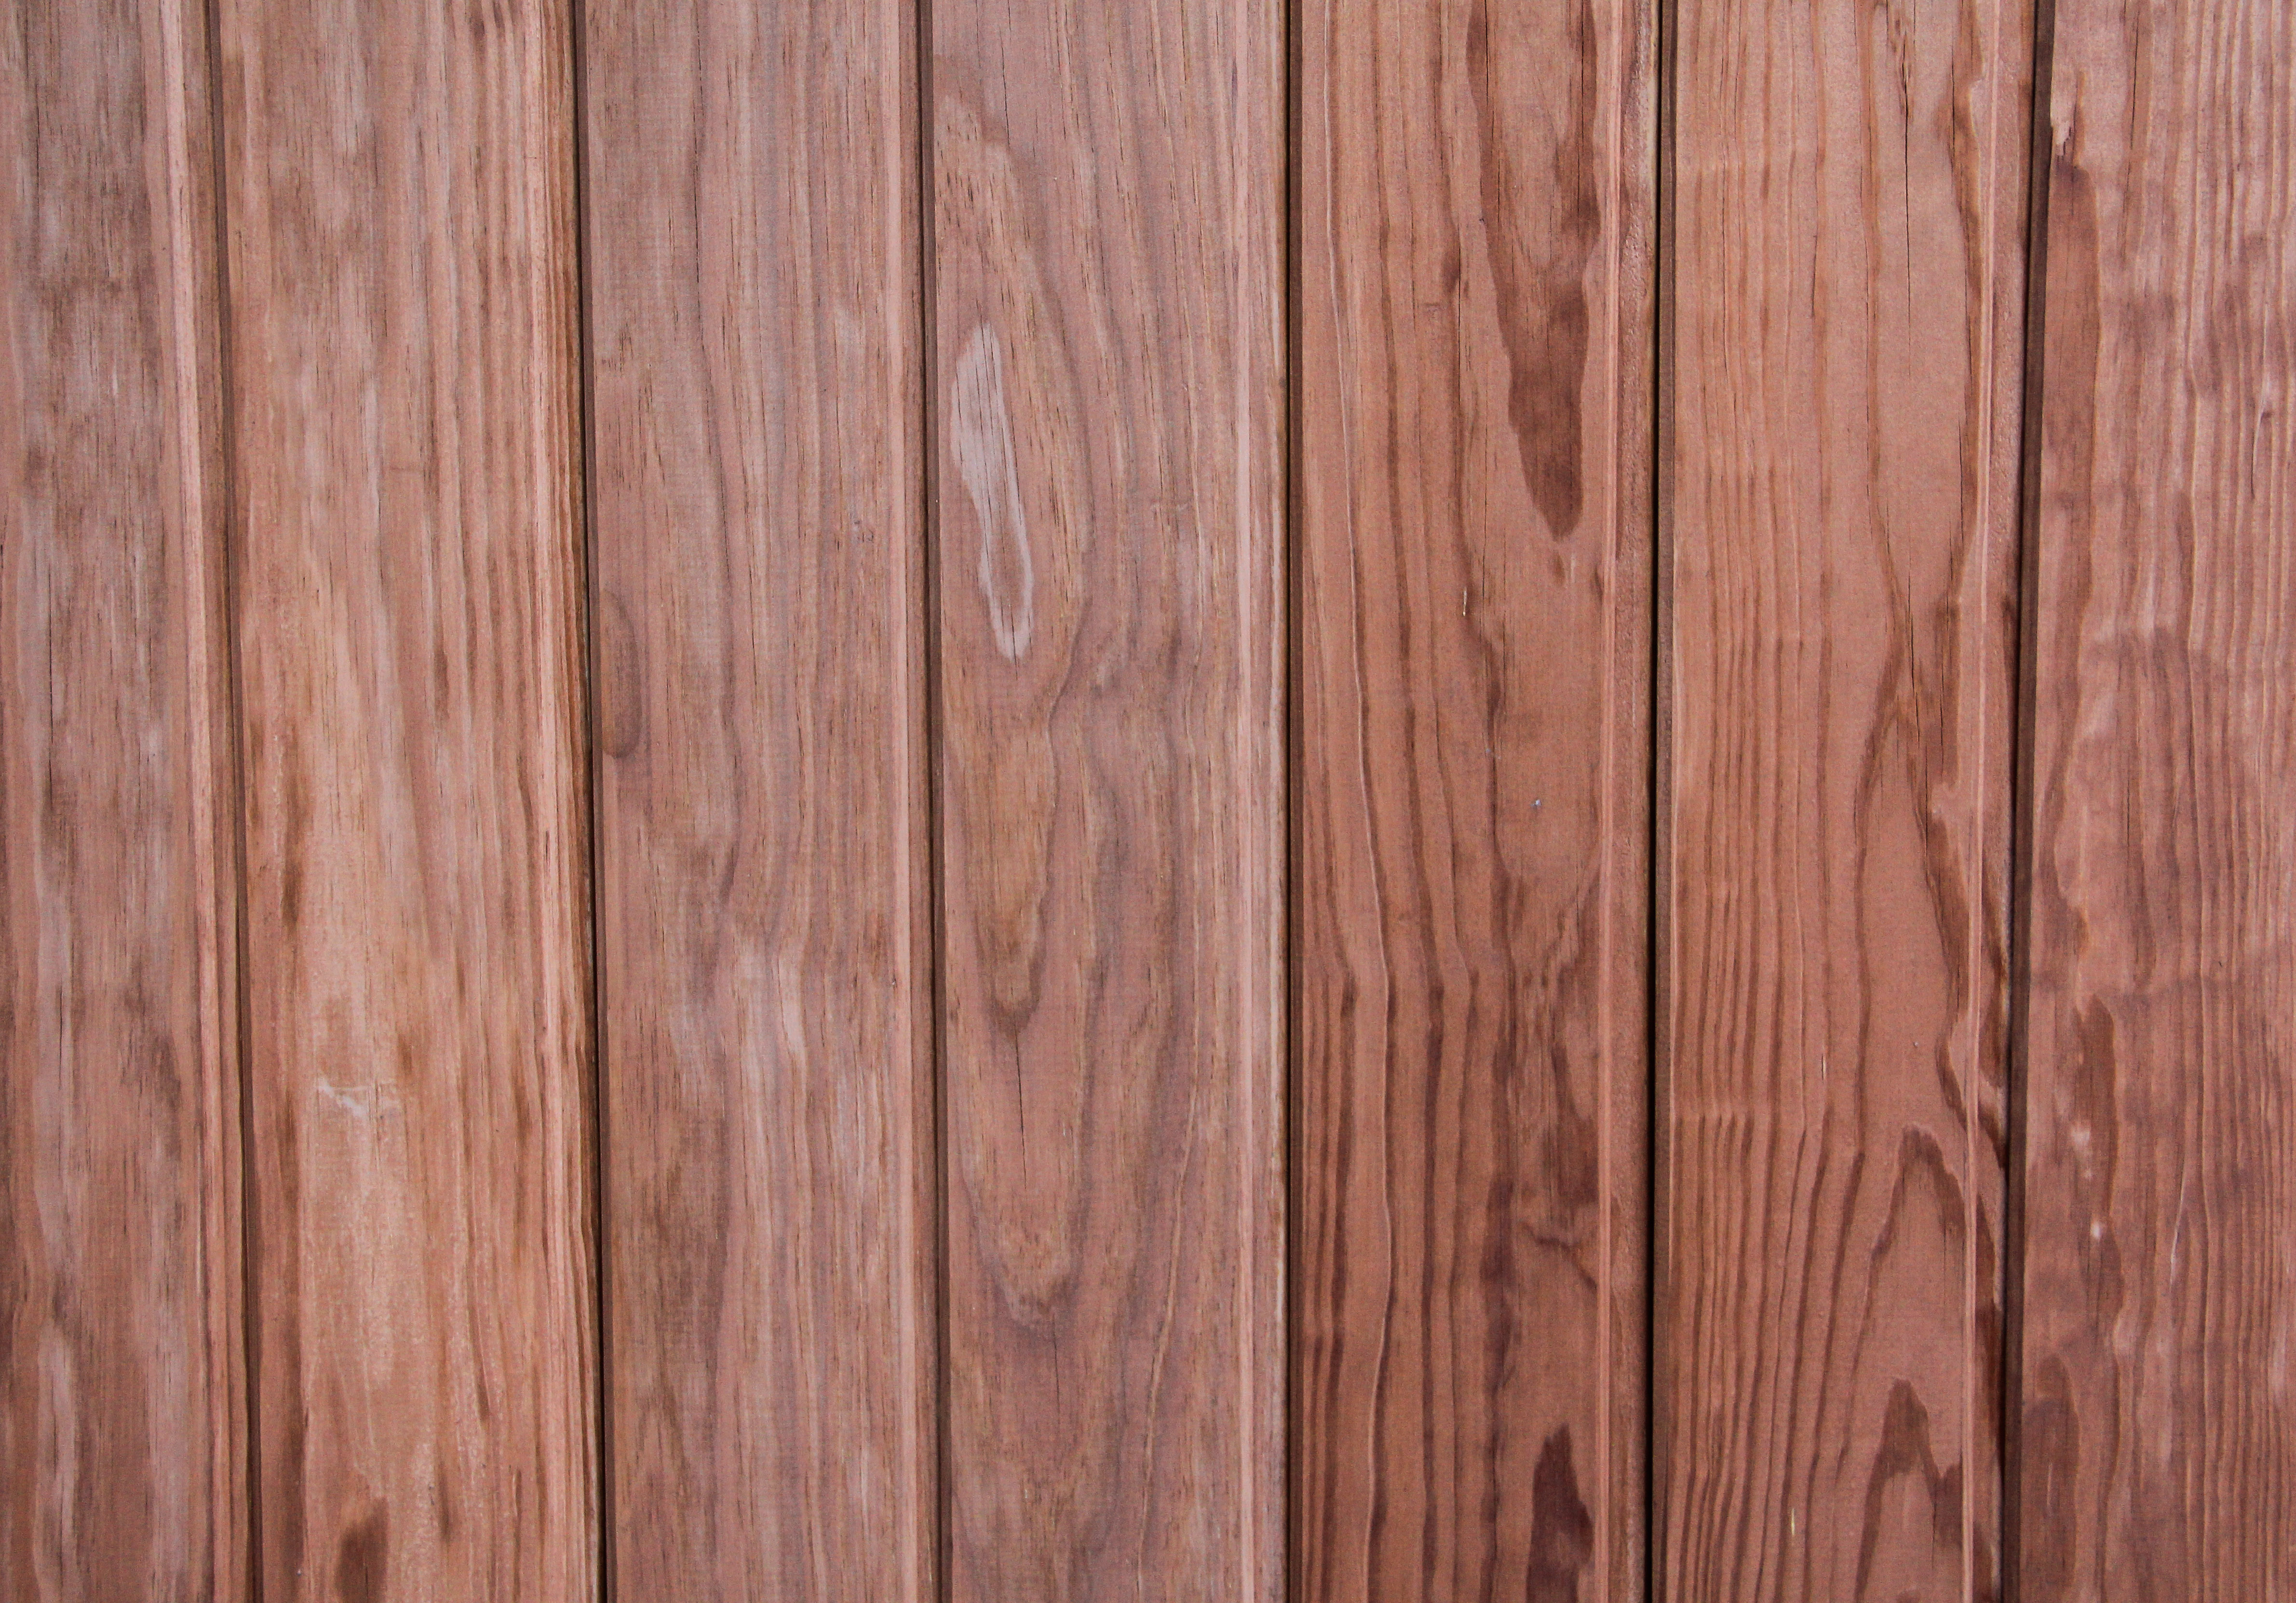 wood texture red panel wall flooring oak stock photo wallpaper ...